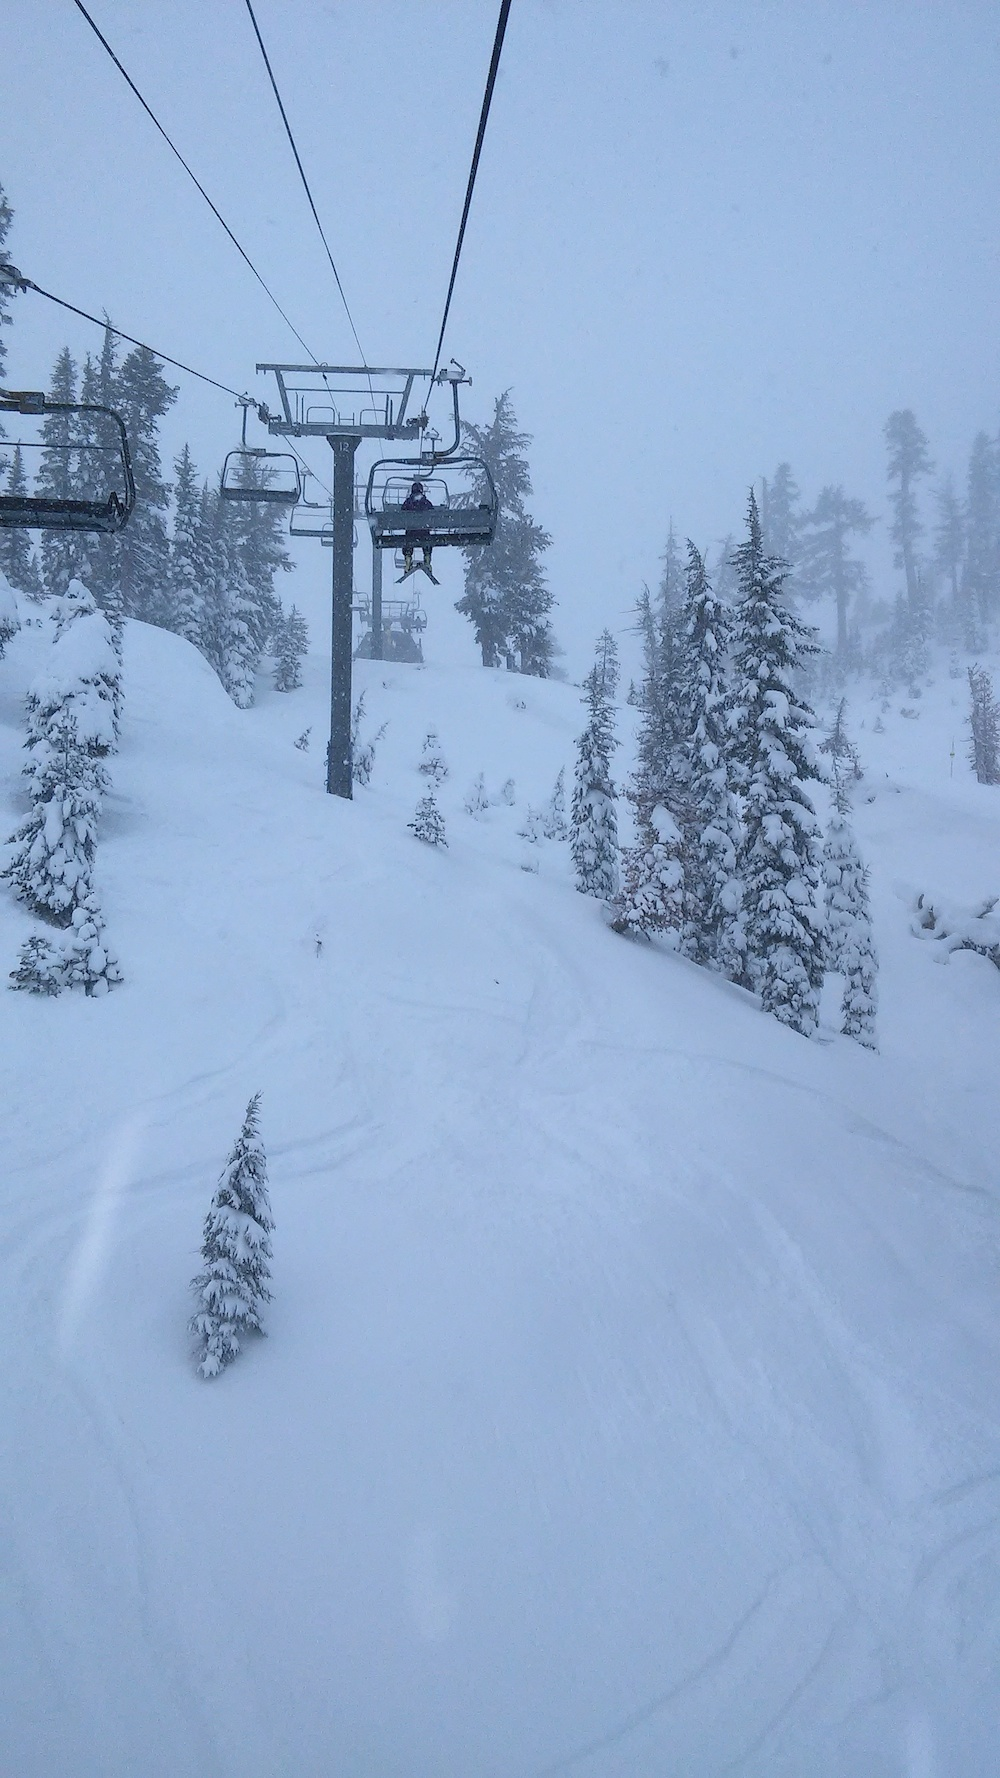 It looks like we missed another fine day at Alpine Meadows. Photo by Valley Girl